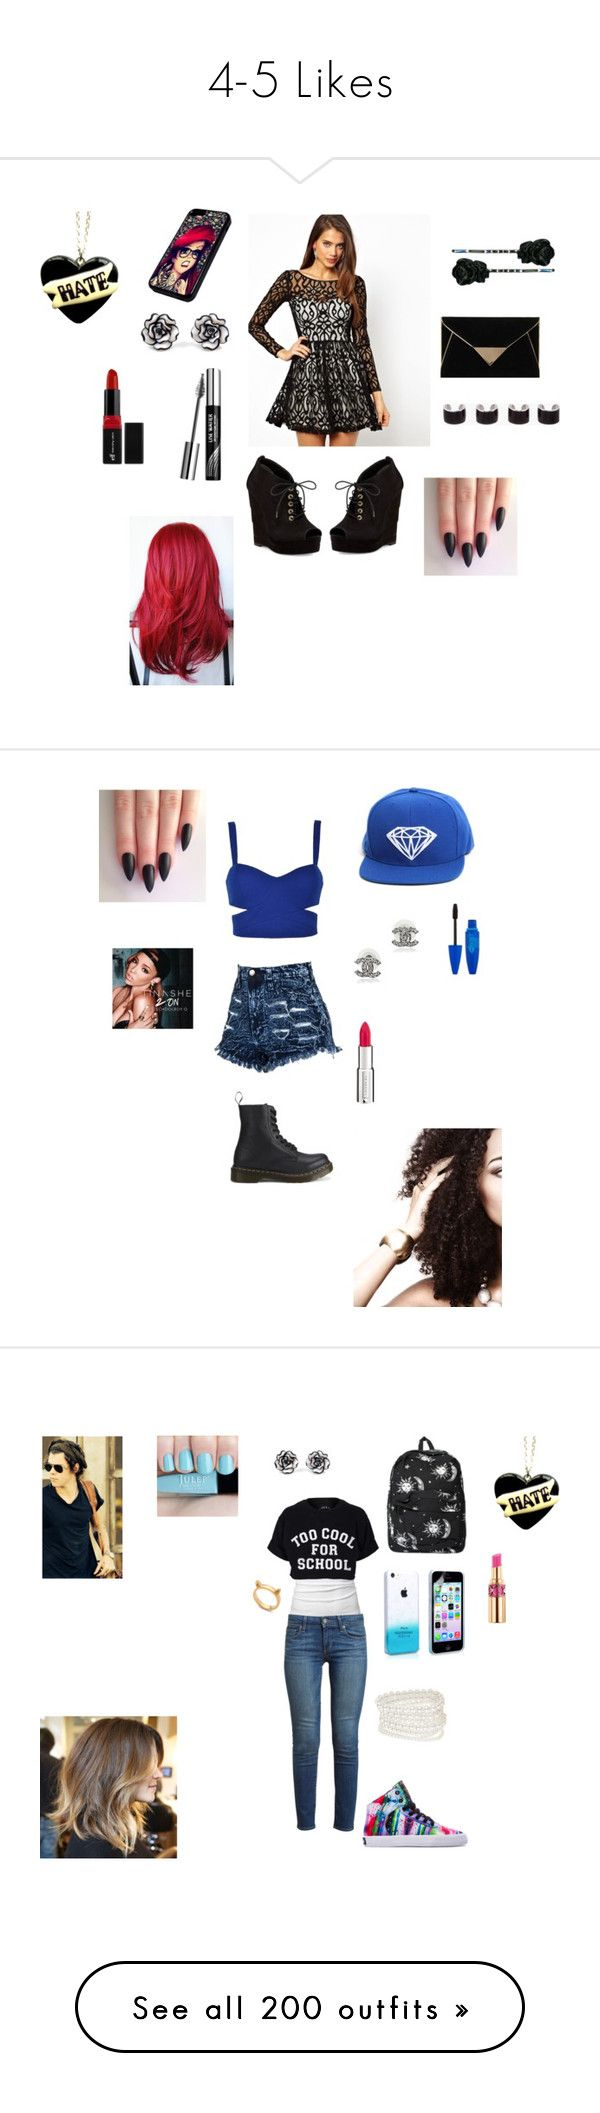 """""""4-5 Likes"""" by sosfamforlife ❤ liked on Polyvore featuring Lipsy, Diane Von Furstenberg, Maison Margiela, Lise Watier, Ally Fashion, Dr. Martens, Diamond Supply Co., Givenchy, James Perse and Filles à papa"""